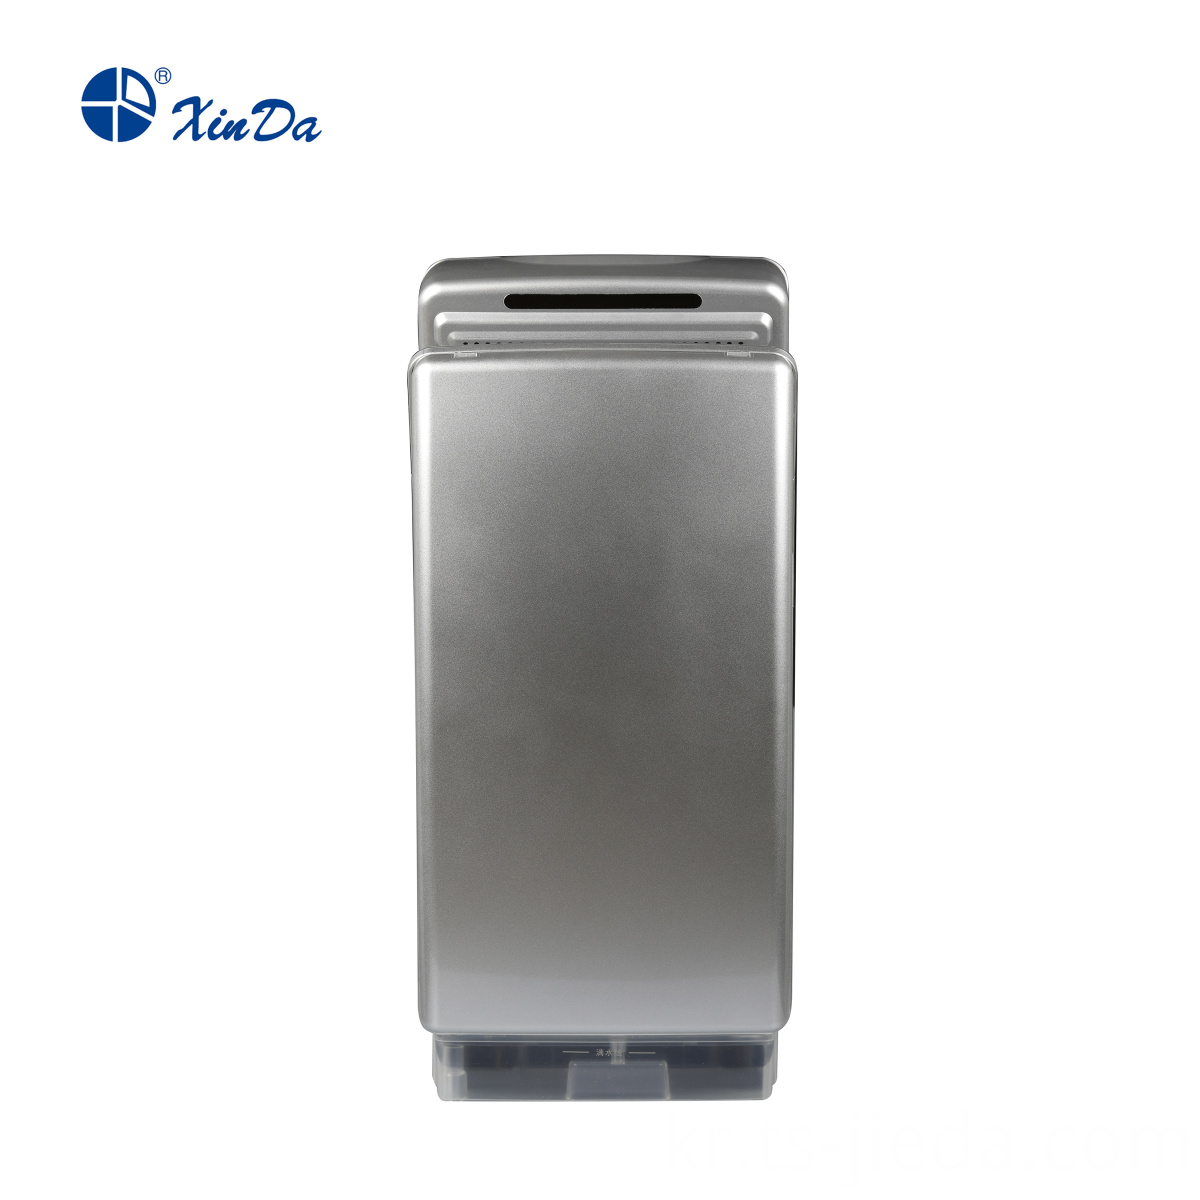 Long life silver quick hand dryer